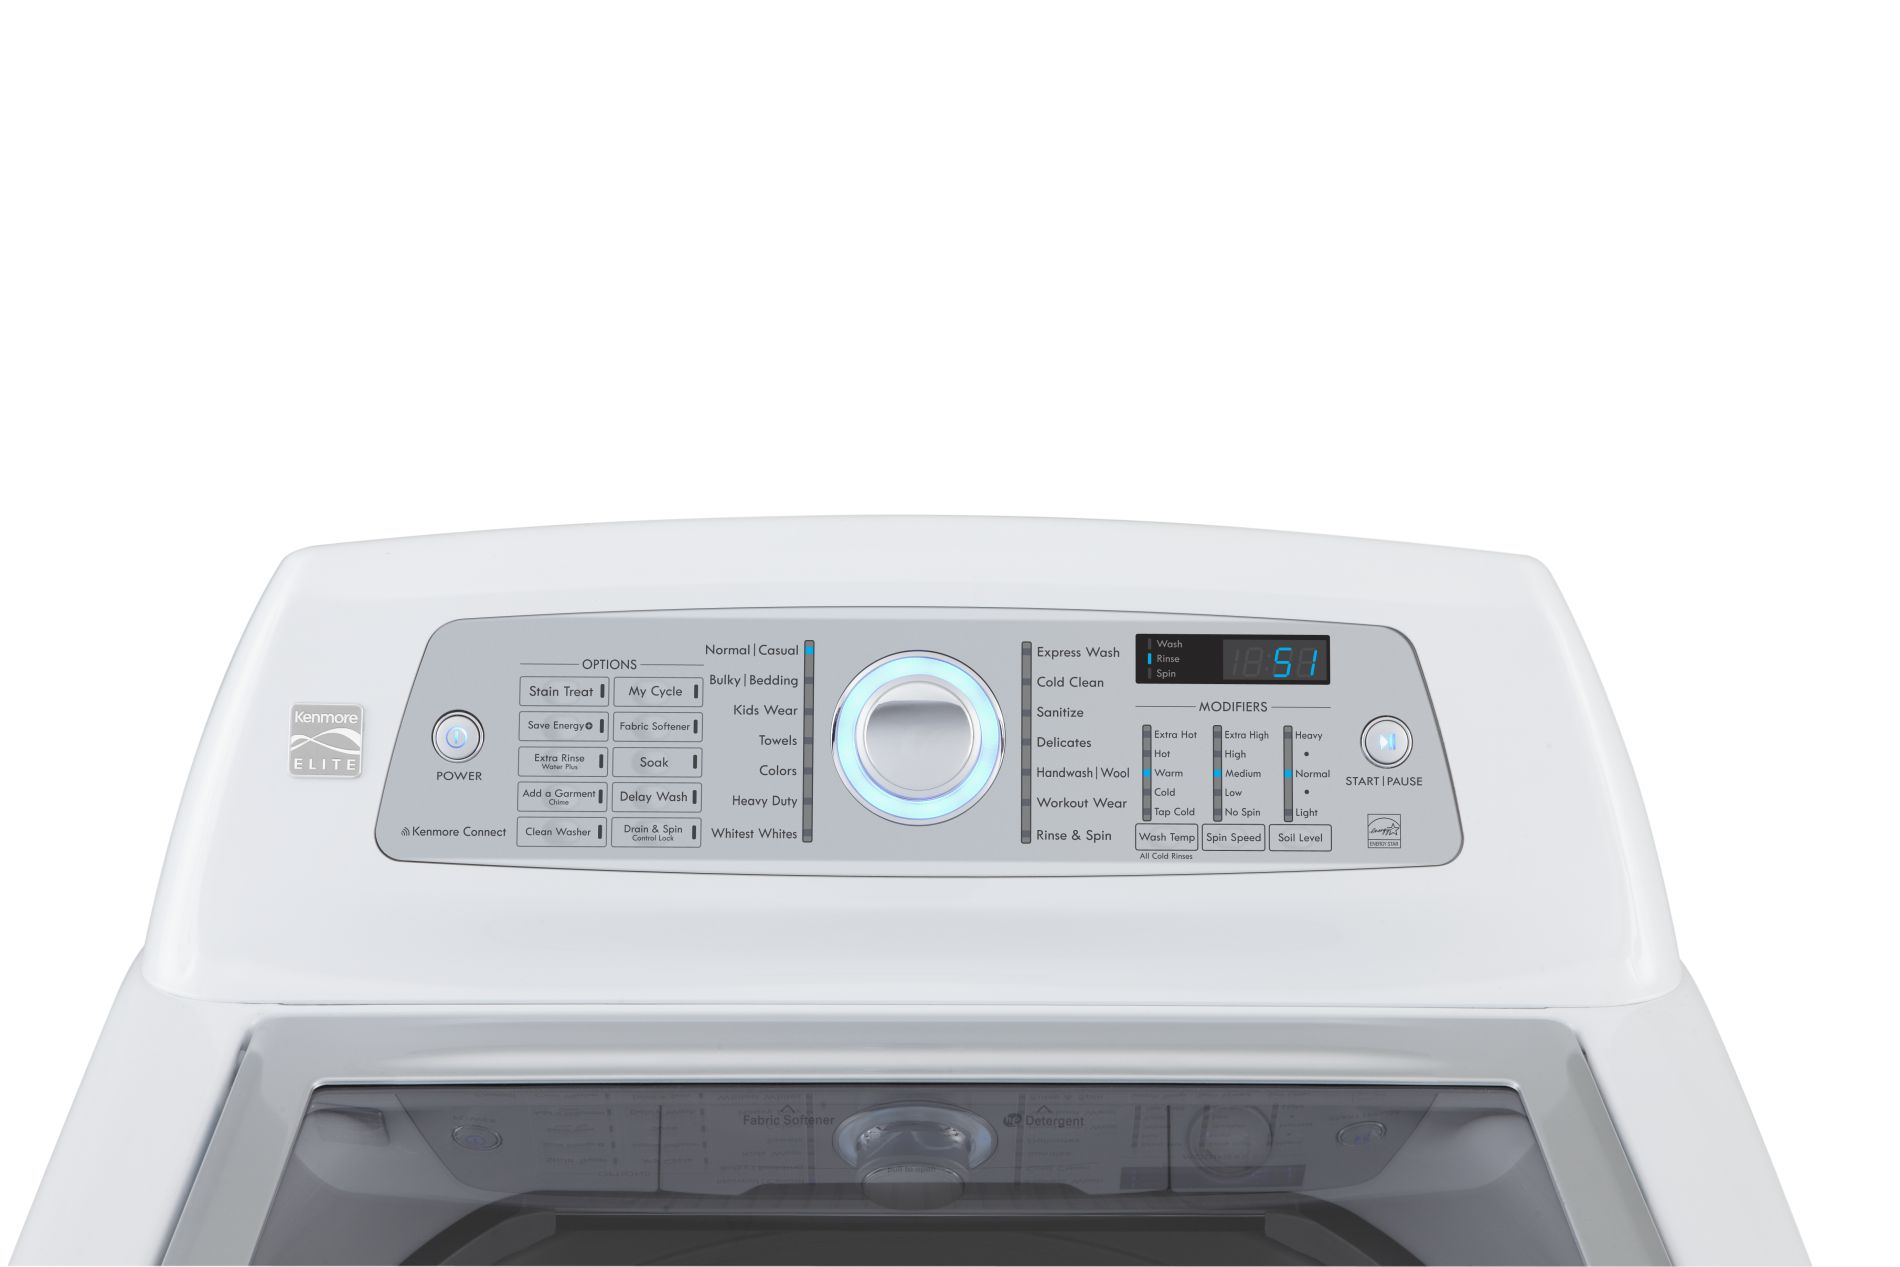 Kenmore Elite 4.7 cu. ft. High-Efficiency Top-Load Washer - White